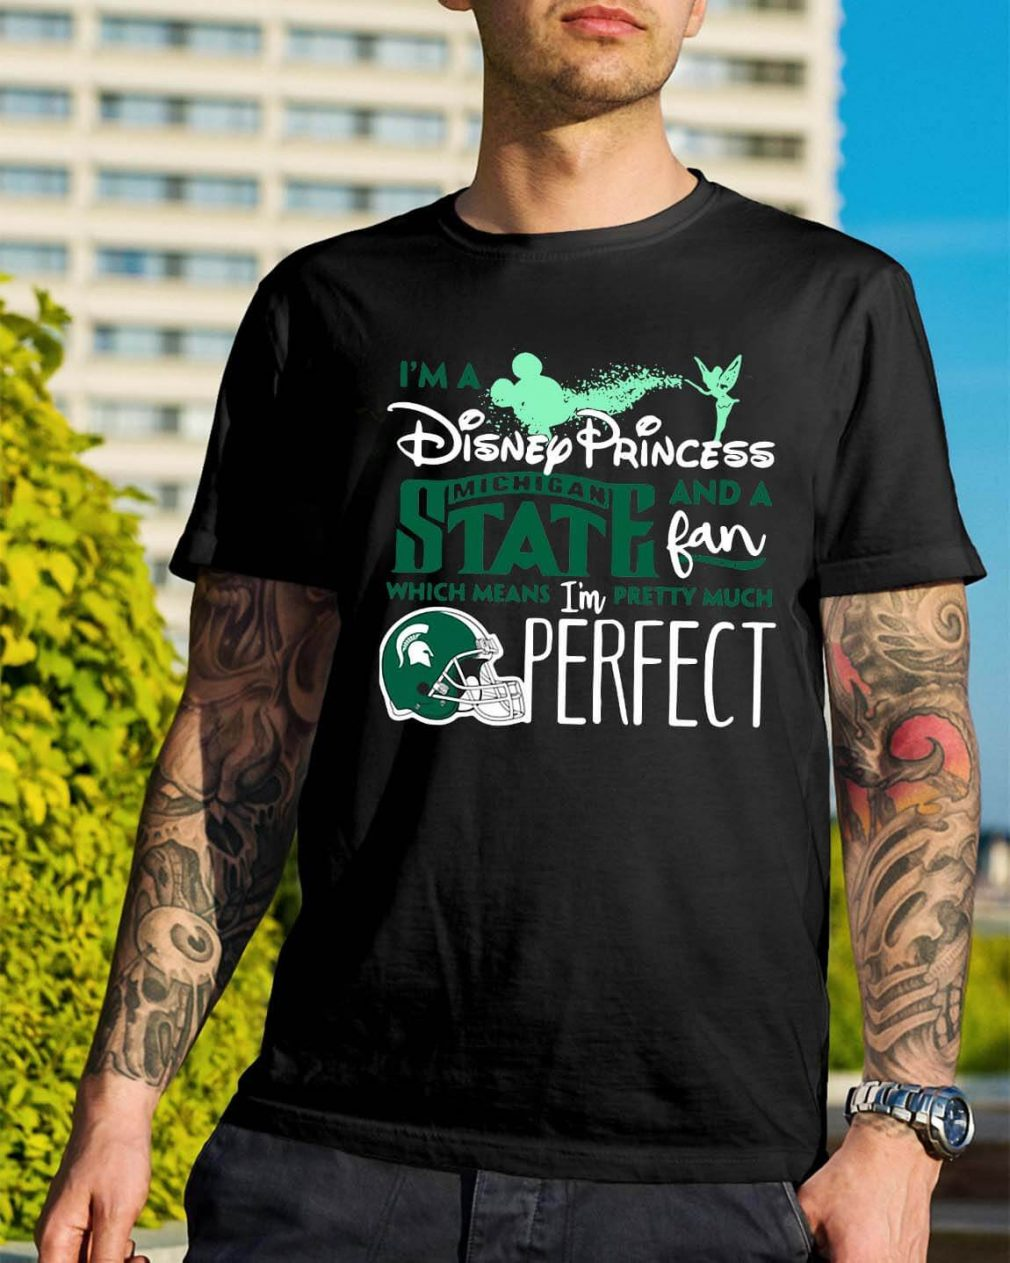 I'm a Disney Princess Michigan State and a fan which means shirt